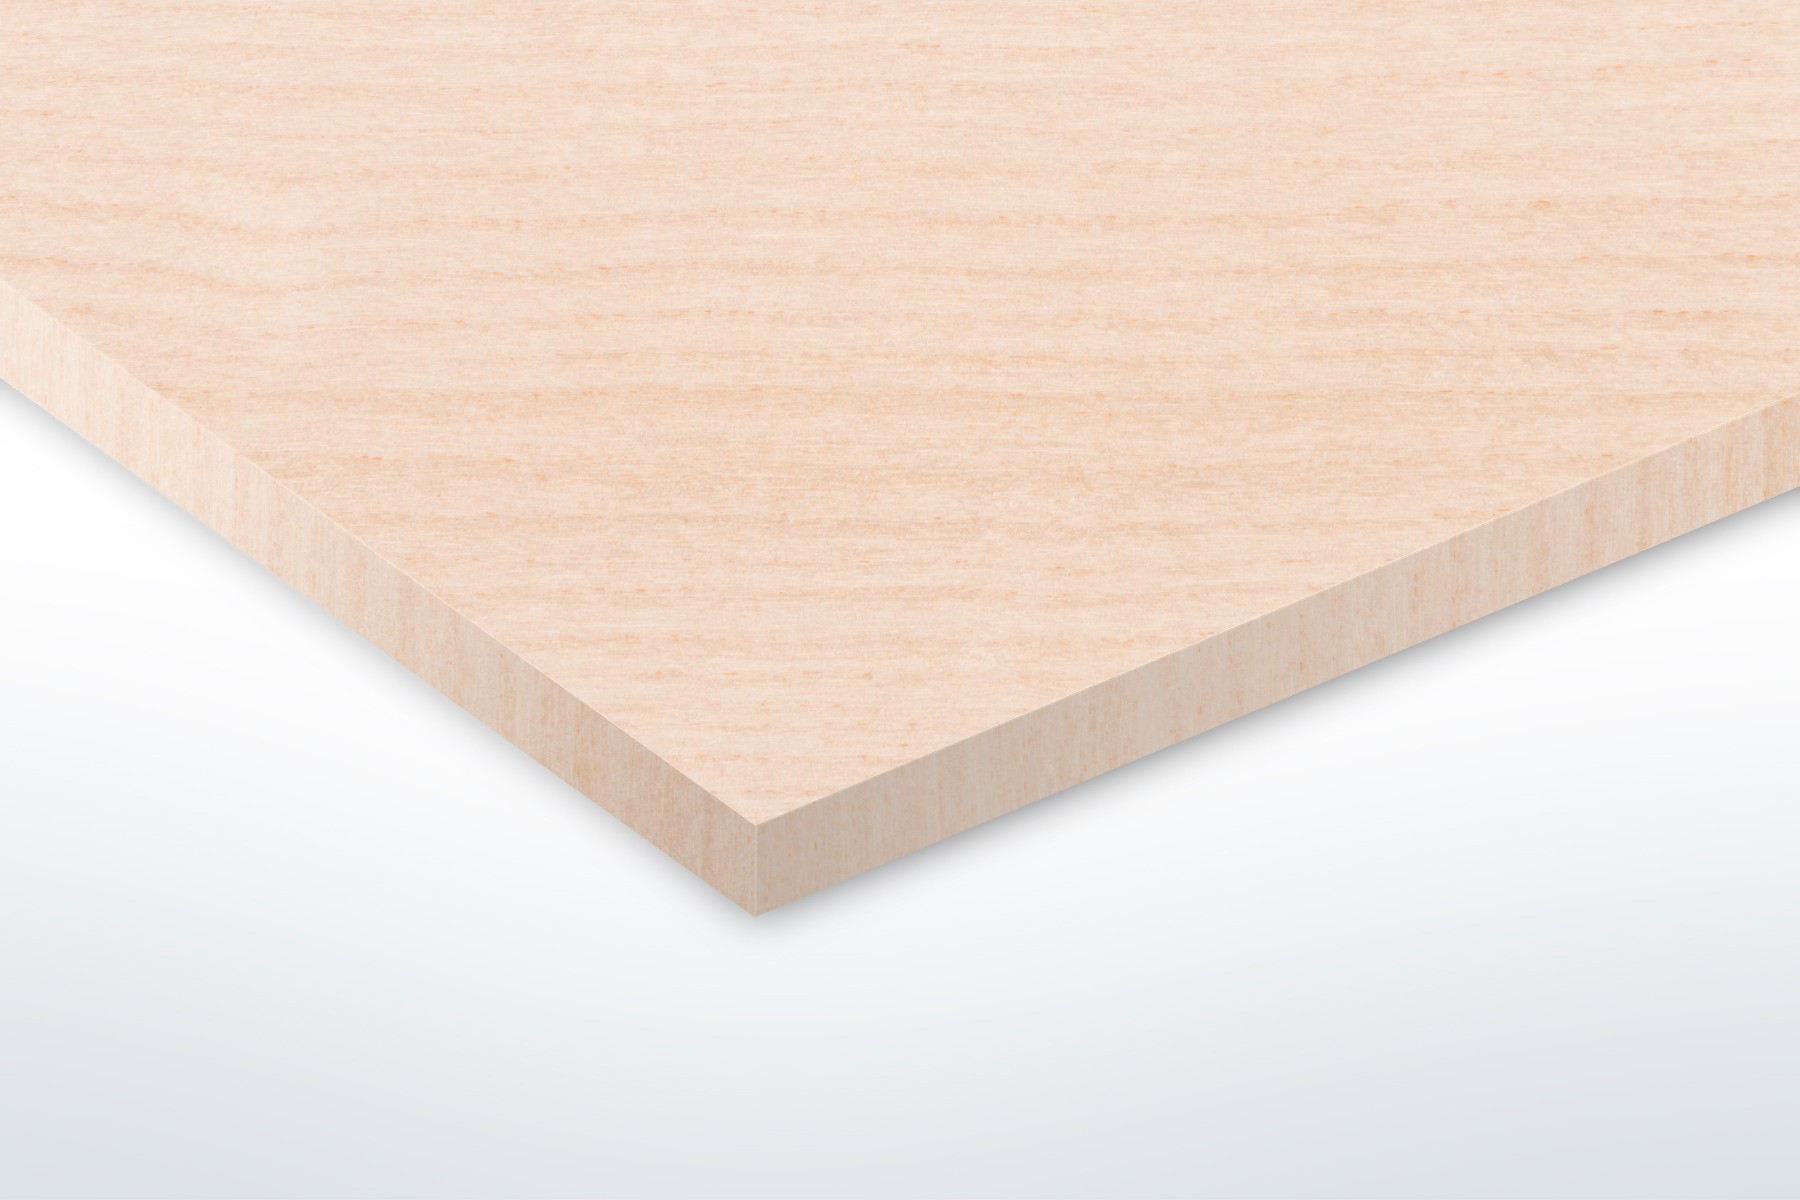 Maple - 600 x 300mm - 5mm